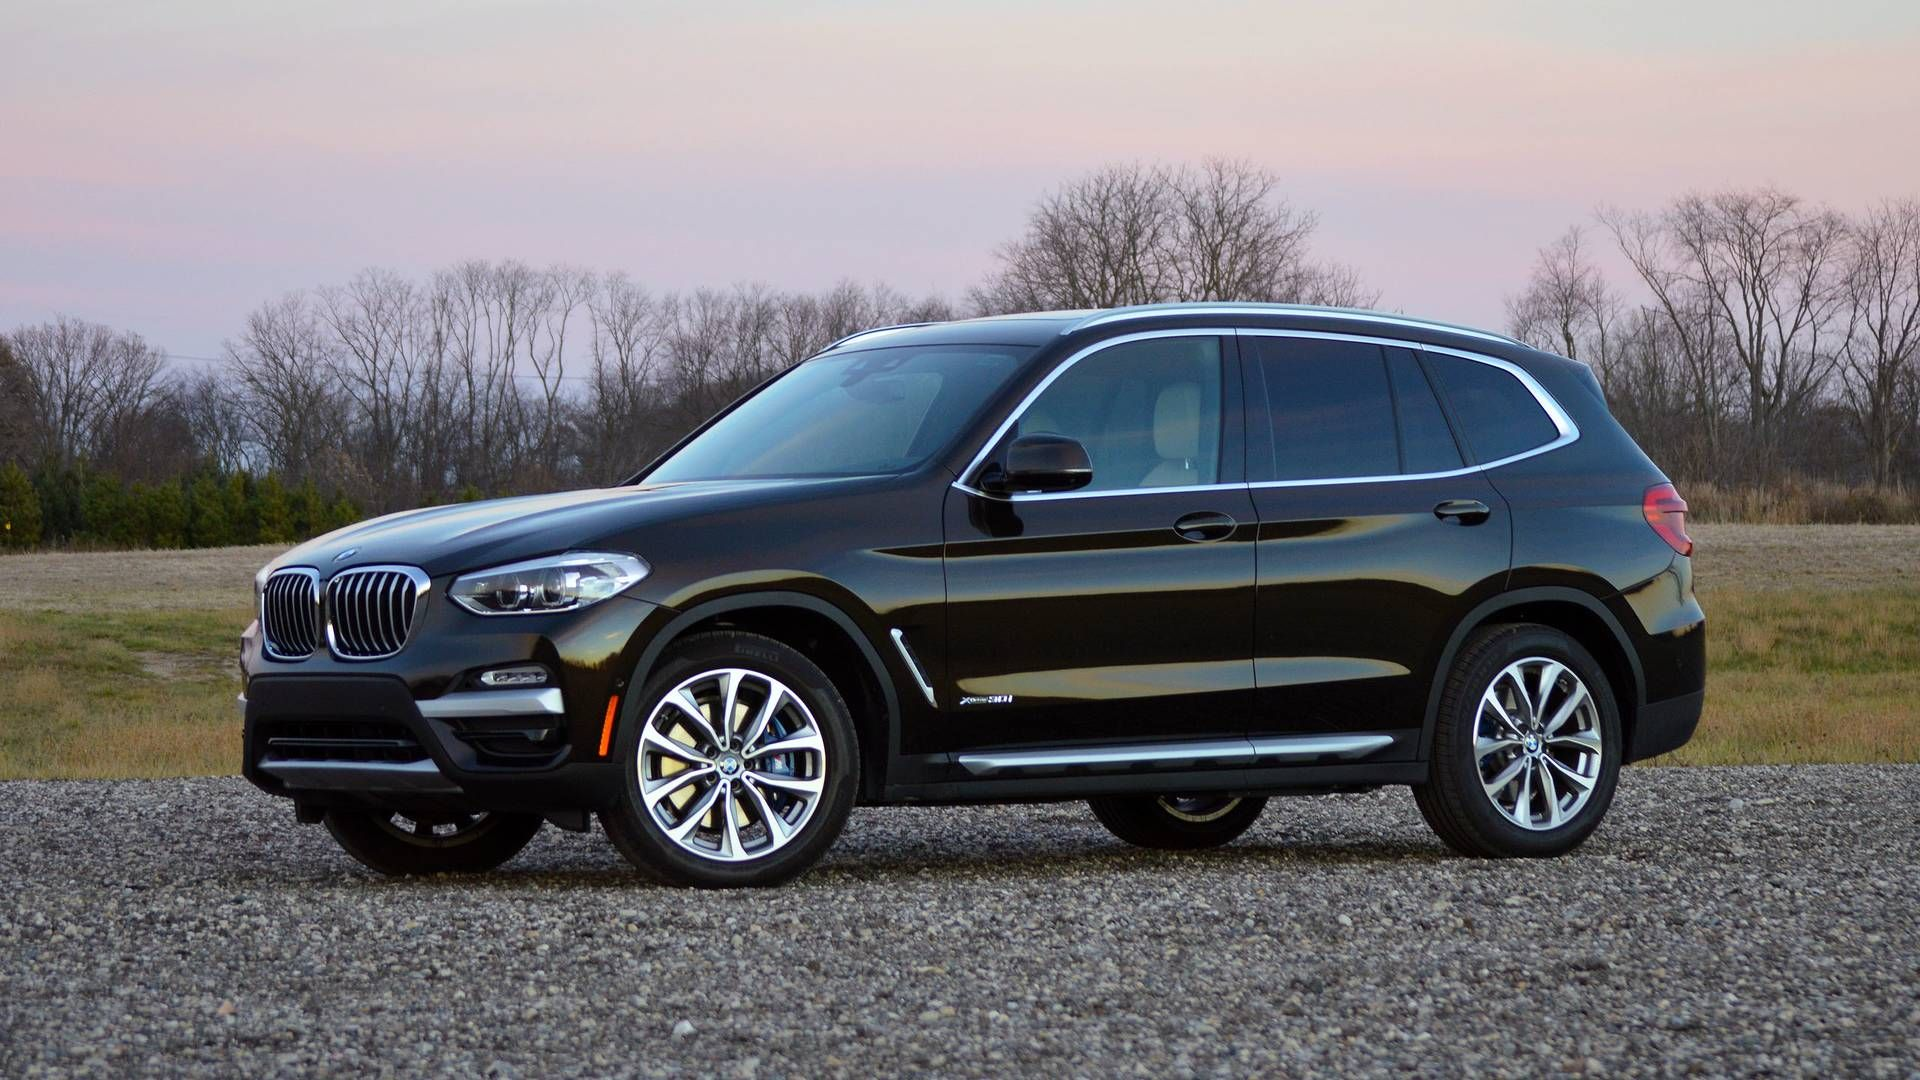 With Bmw Very Repellent To Change We Are Expecting 2020 X3 To Hit Showrooms With Its Base Design Language That Was Introduced In 2018 Since Bmw Bmw X3 Bmw X6